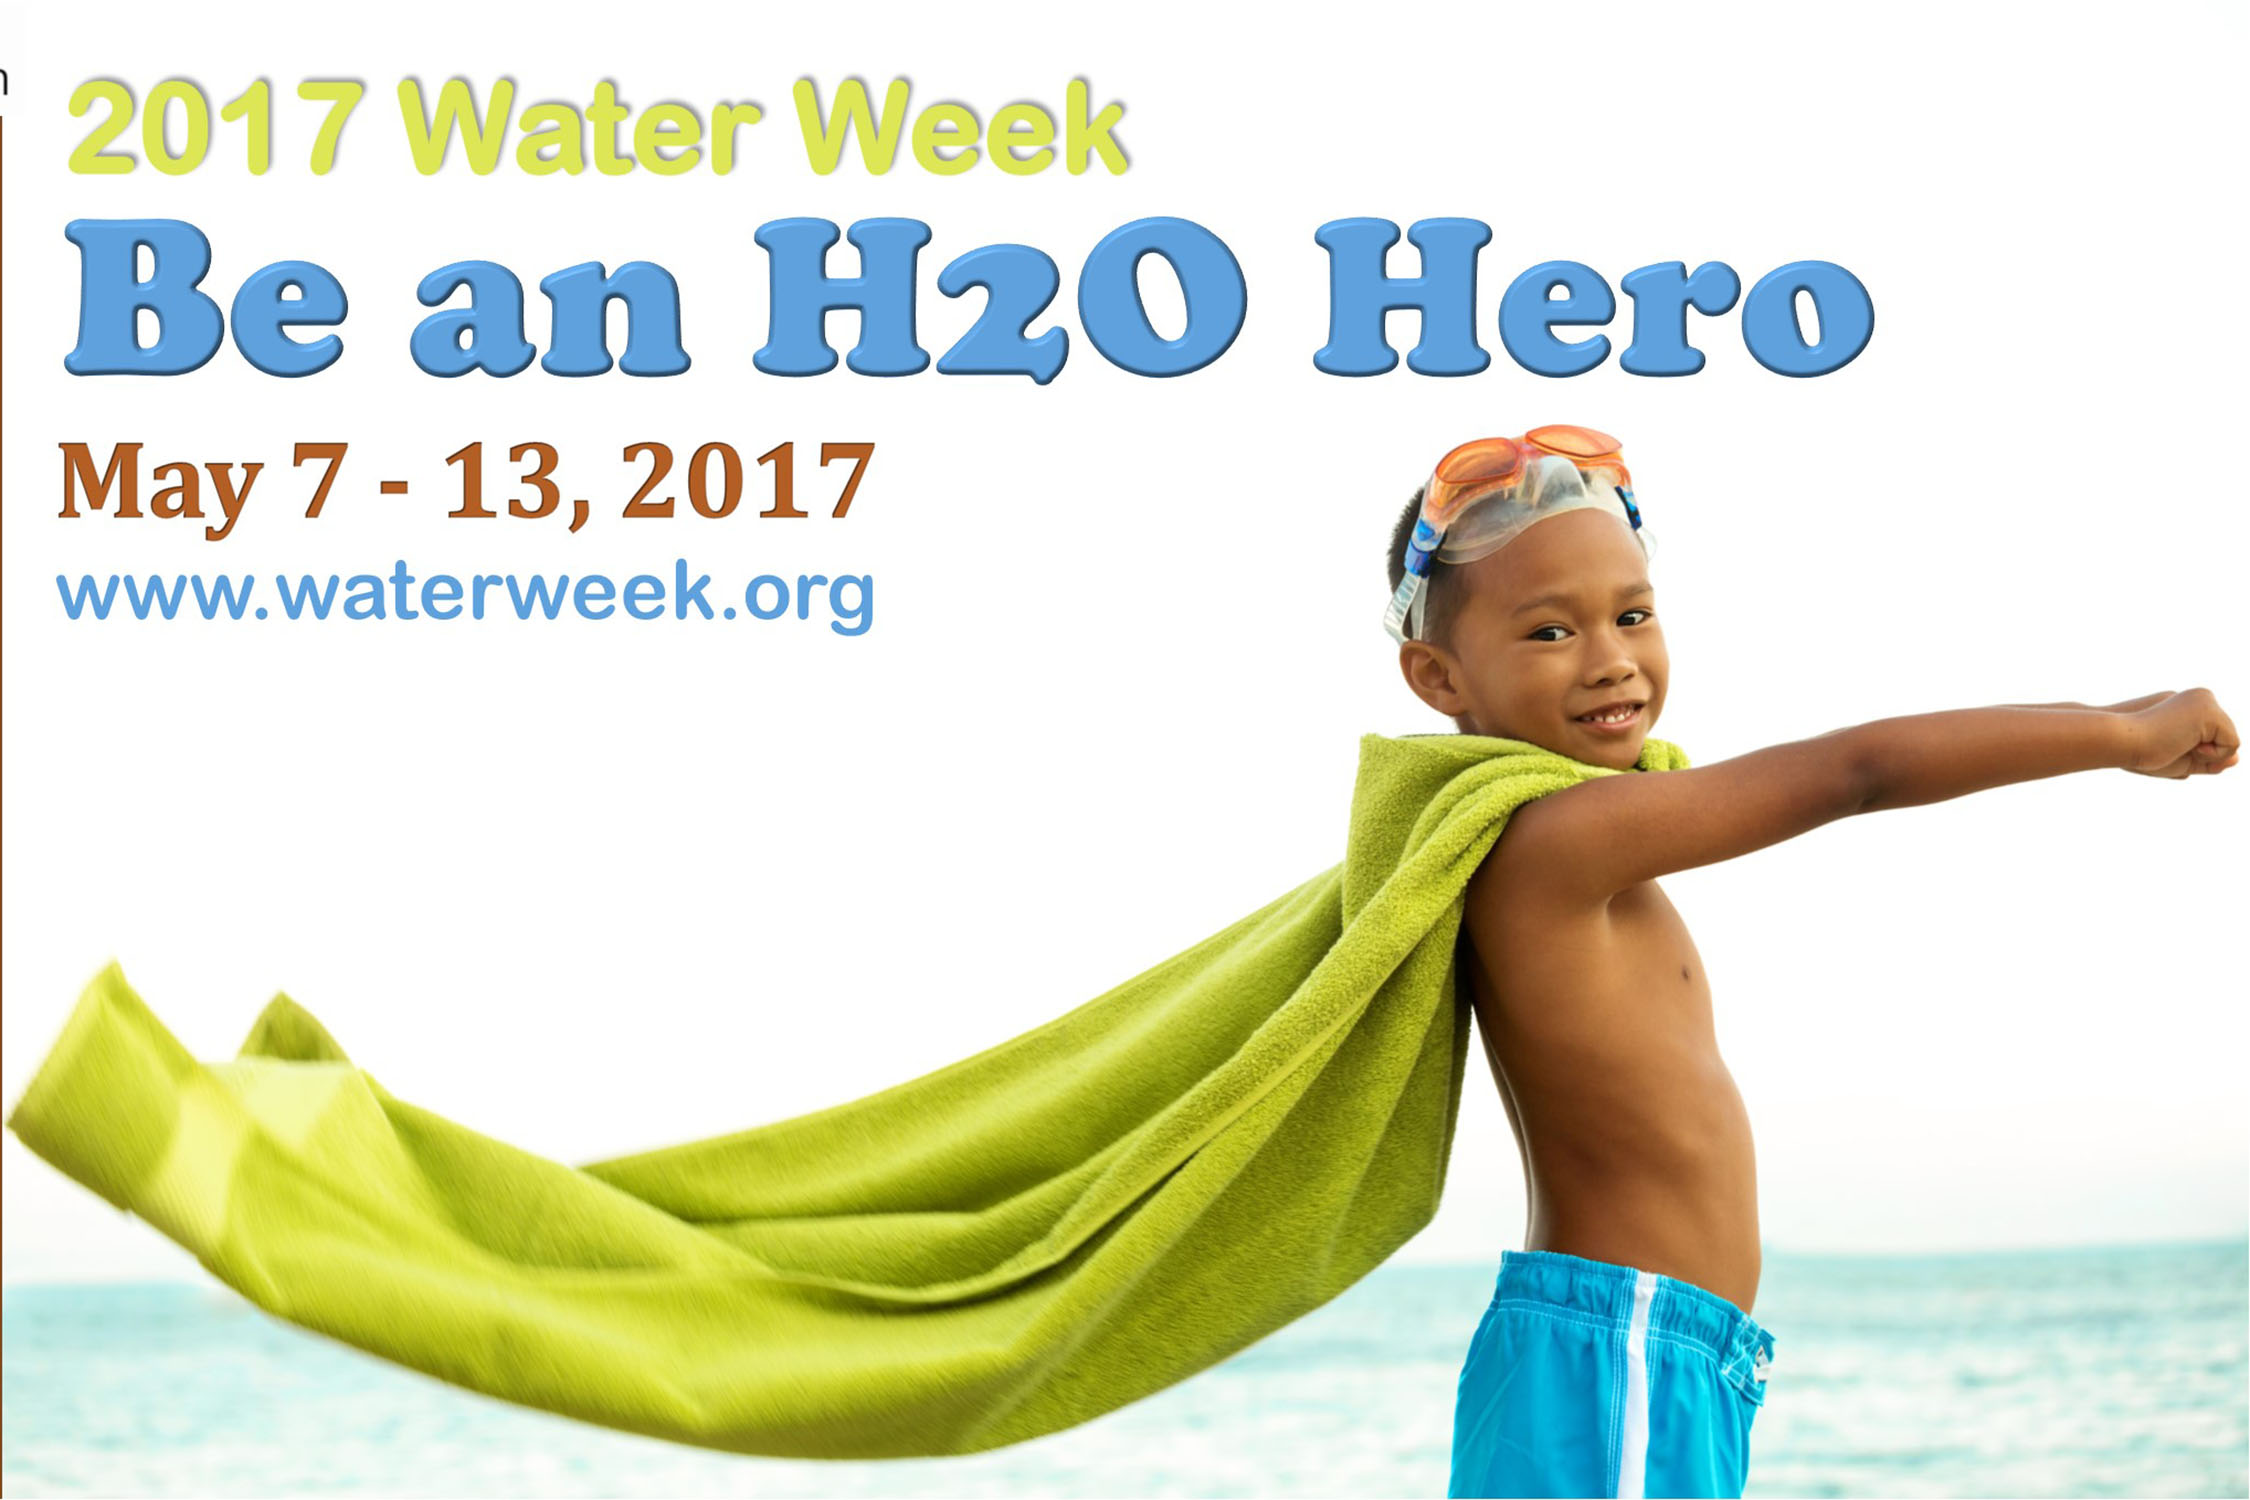 Be a Water Hero for Water Week